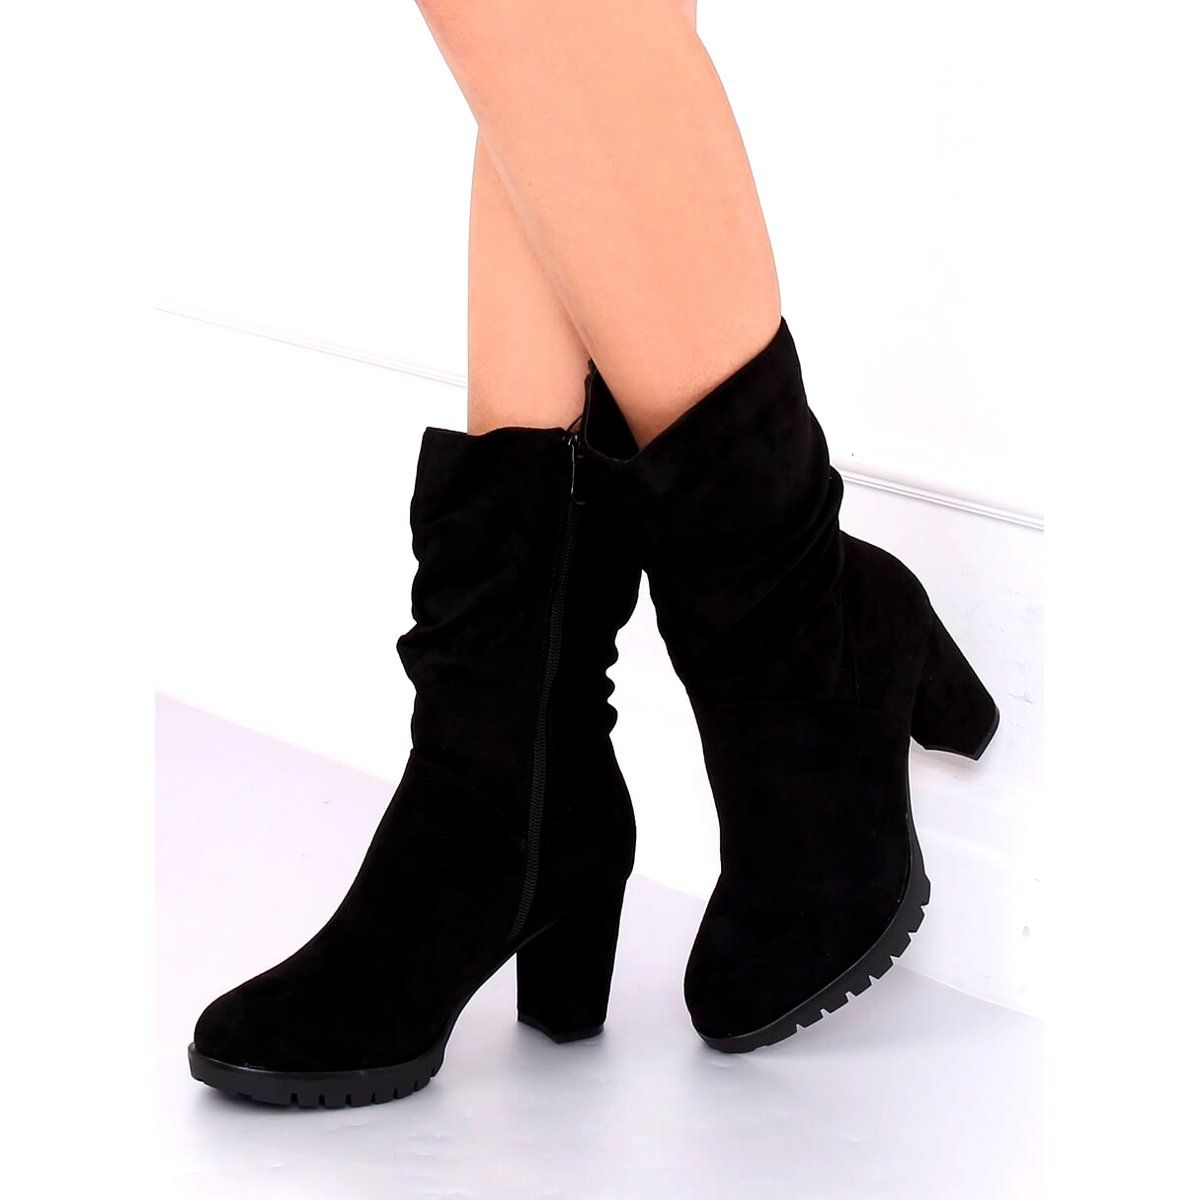 Botki Na Obcasie Czarne 7597 Gg Black Over Knee Boot Ankle Boot Knee Boots